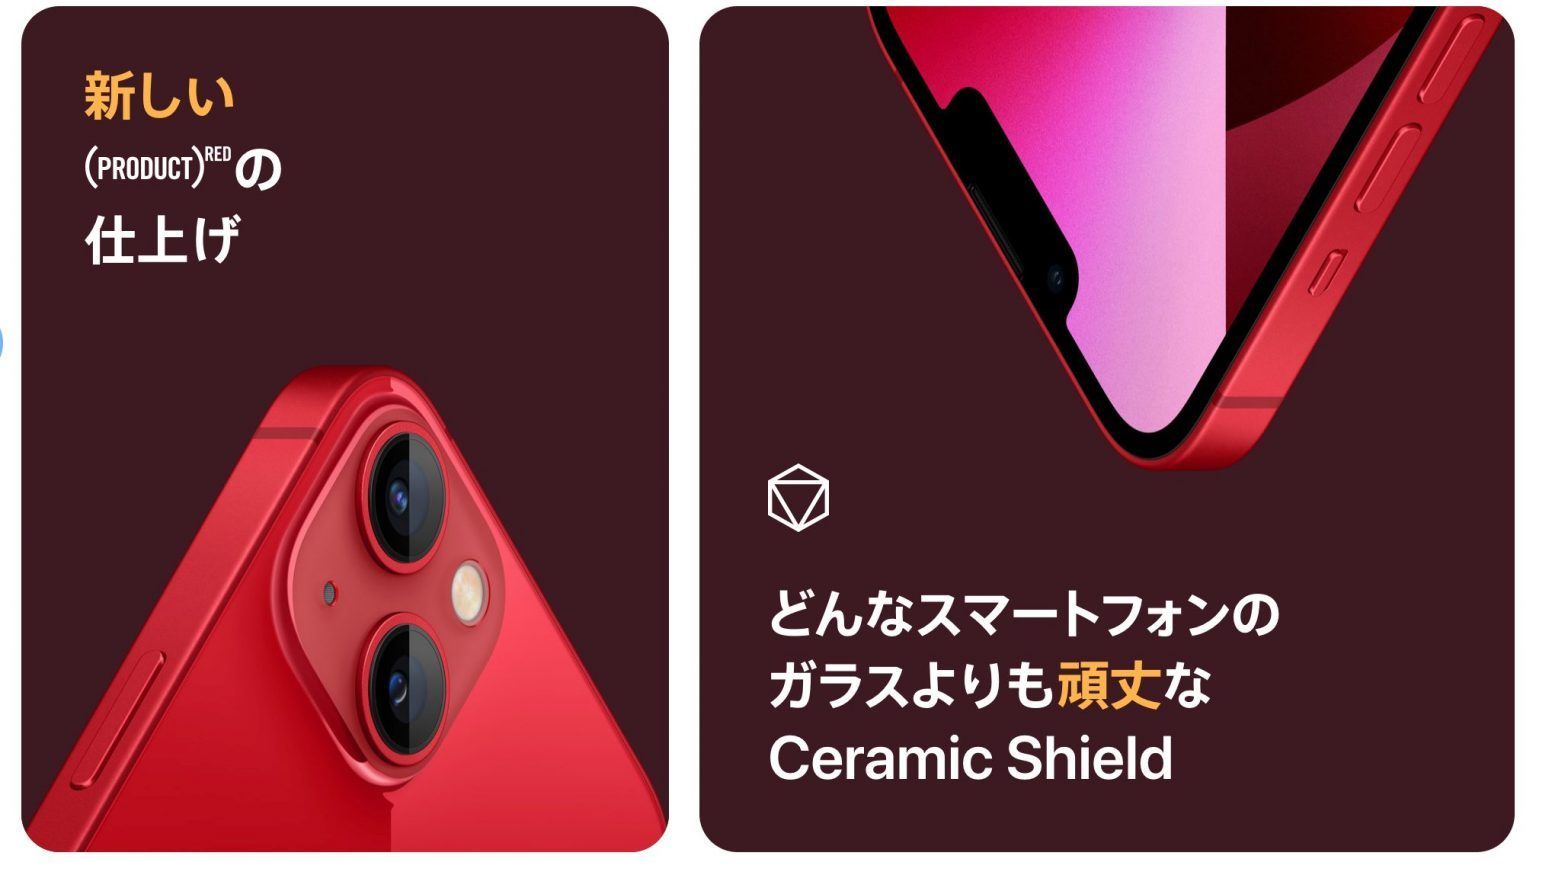 iPhone13 (PRODUCT)RED